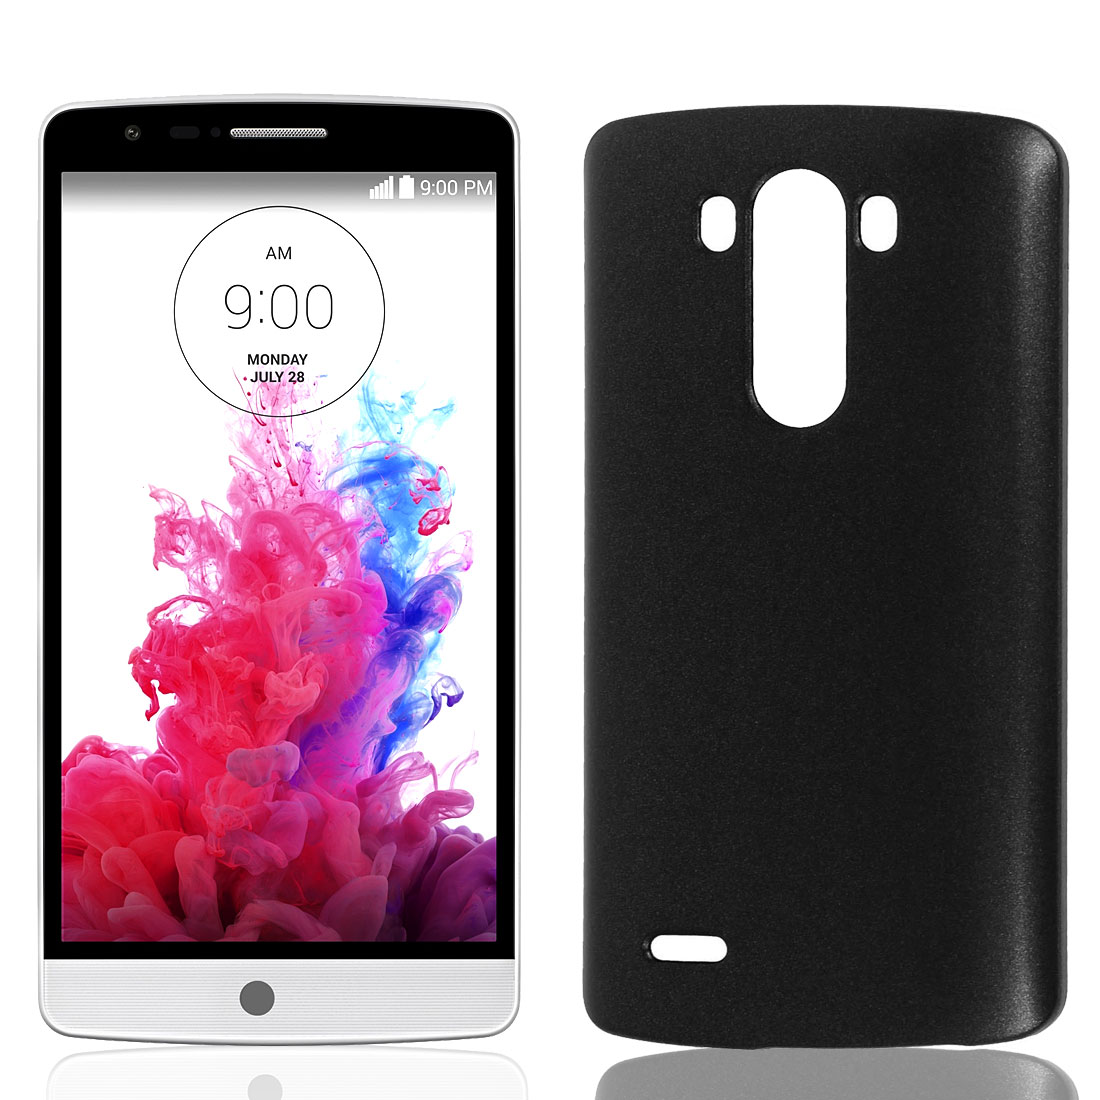 Black Hard Plastic Back Case Cover Phone Protective Shell Guard Skin for LG G3